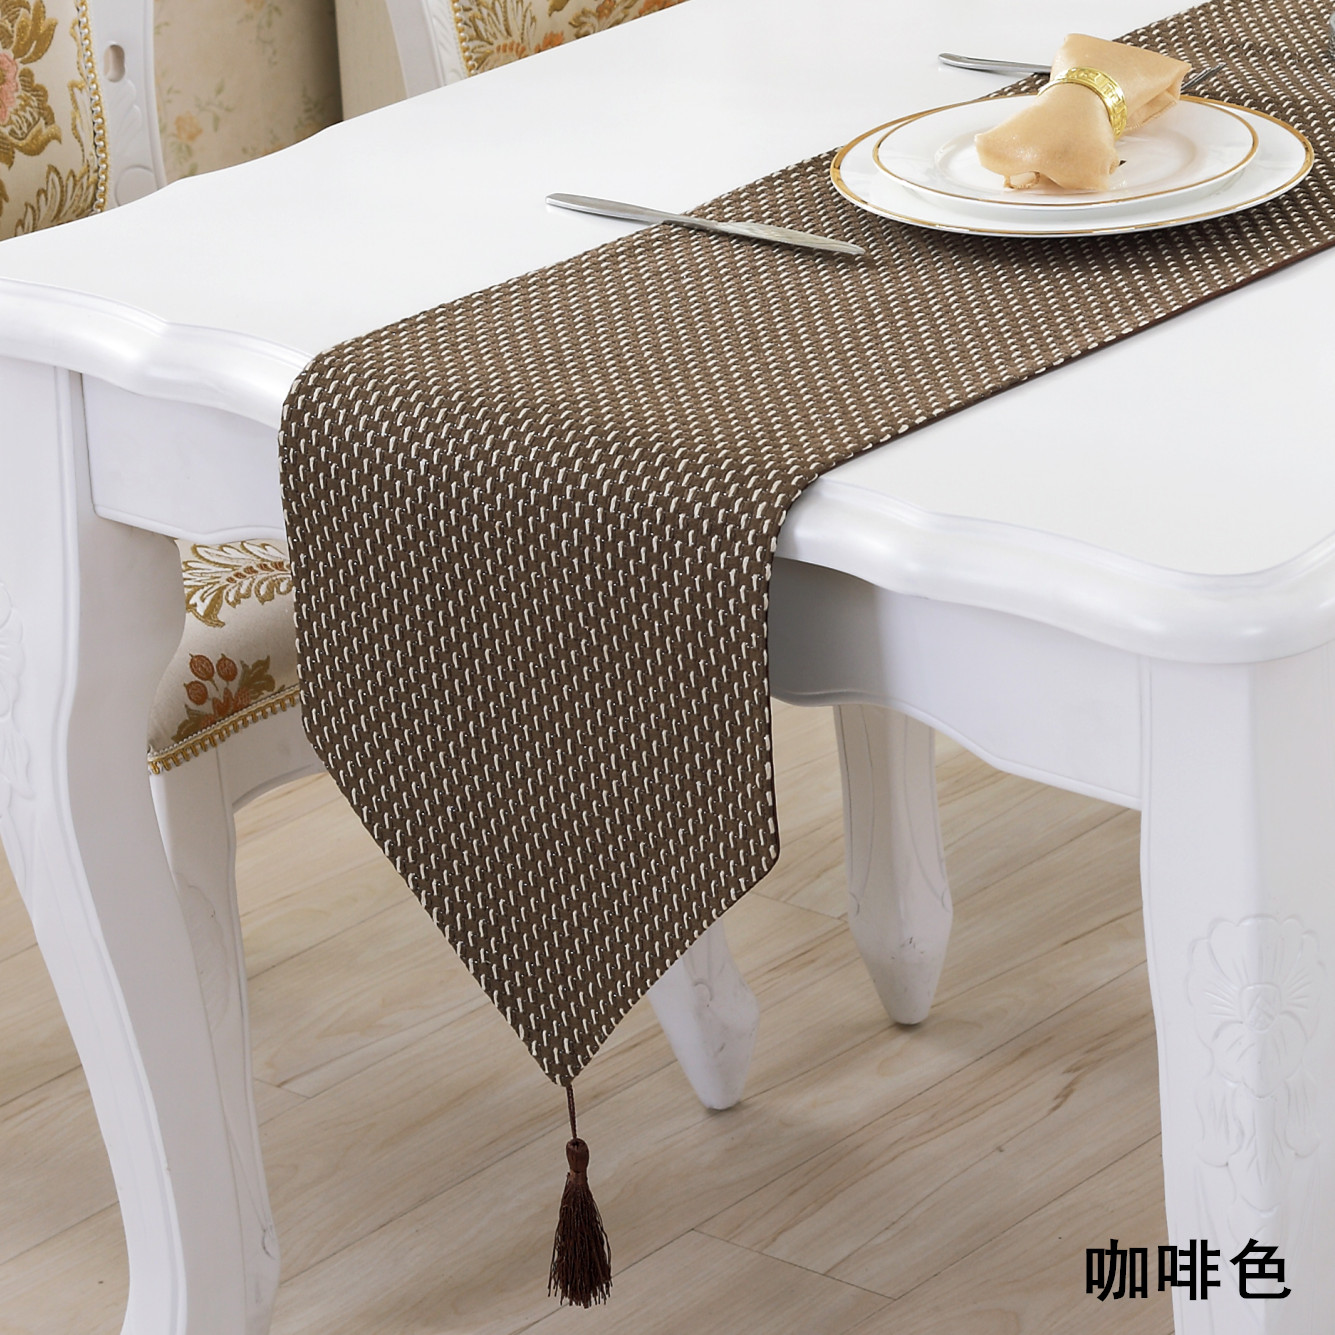 Buy New Simple Modern Luxury Fashion Table Runner Plaid Knit High End Coffee